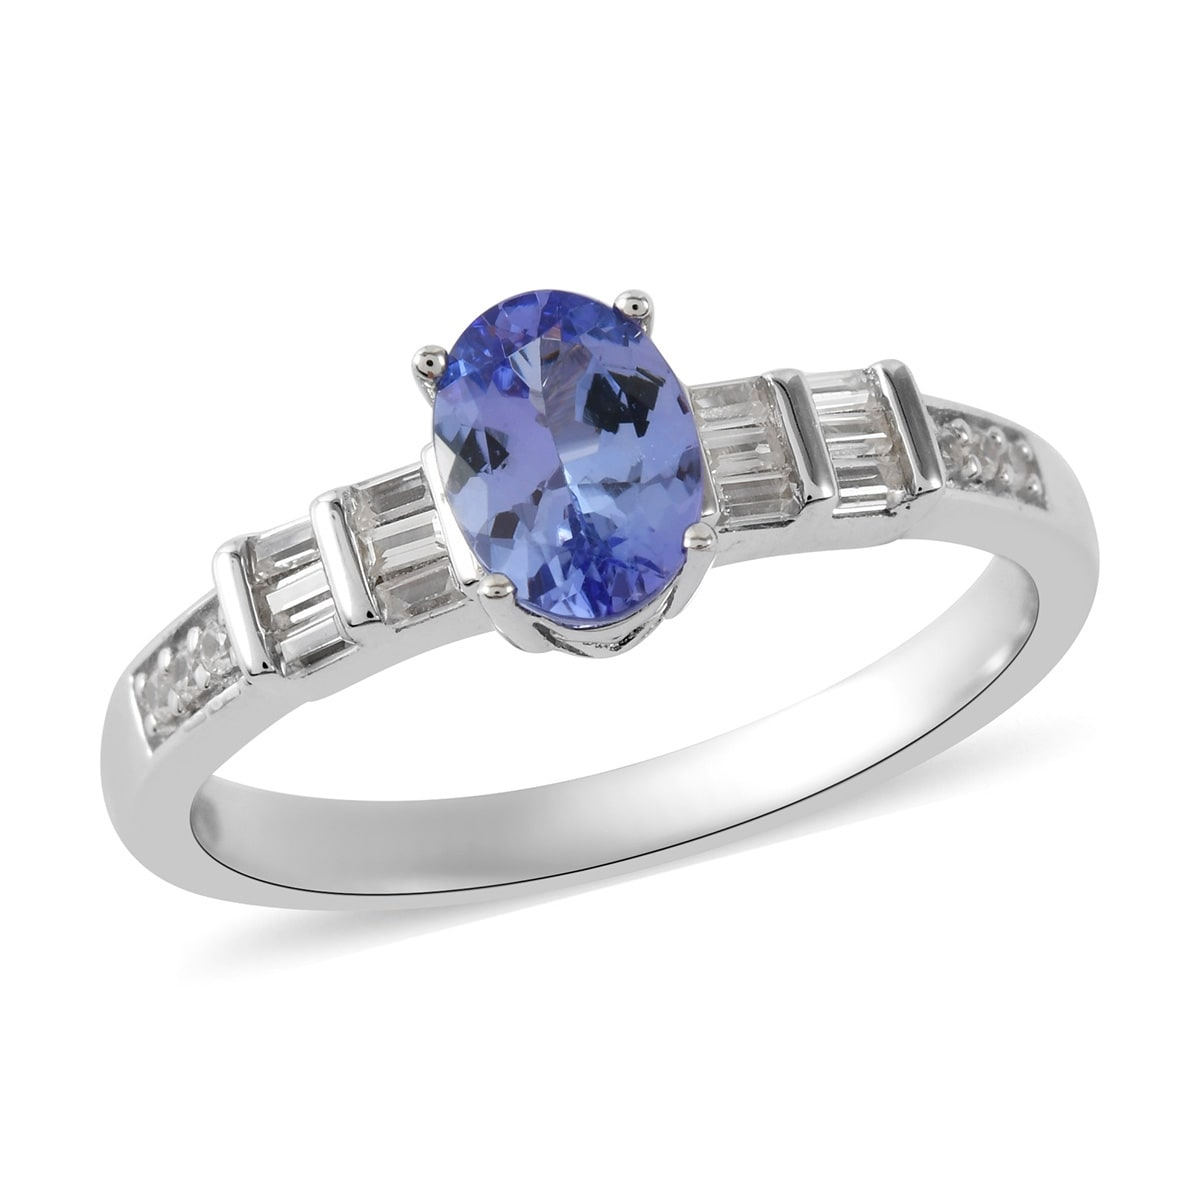 Merthus 925 Sterling Silver Ring Synthetic Tanzanite Leaf CZ Halo Engagement Band Ring Size 6-9